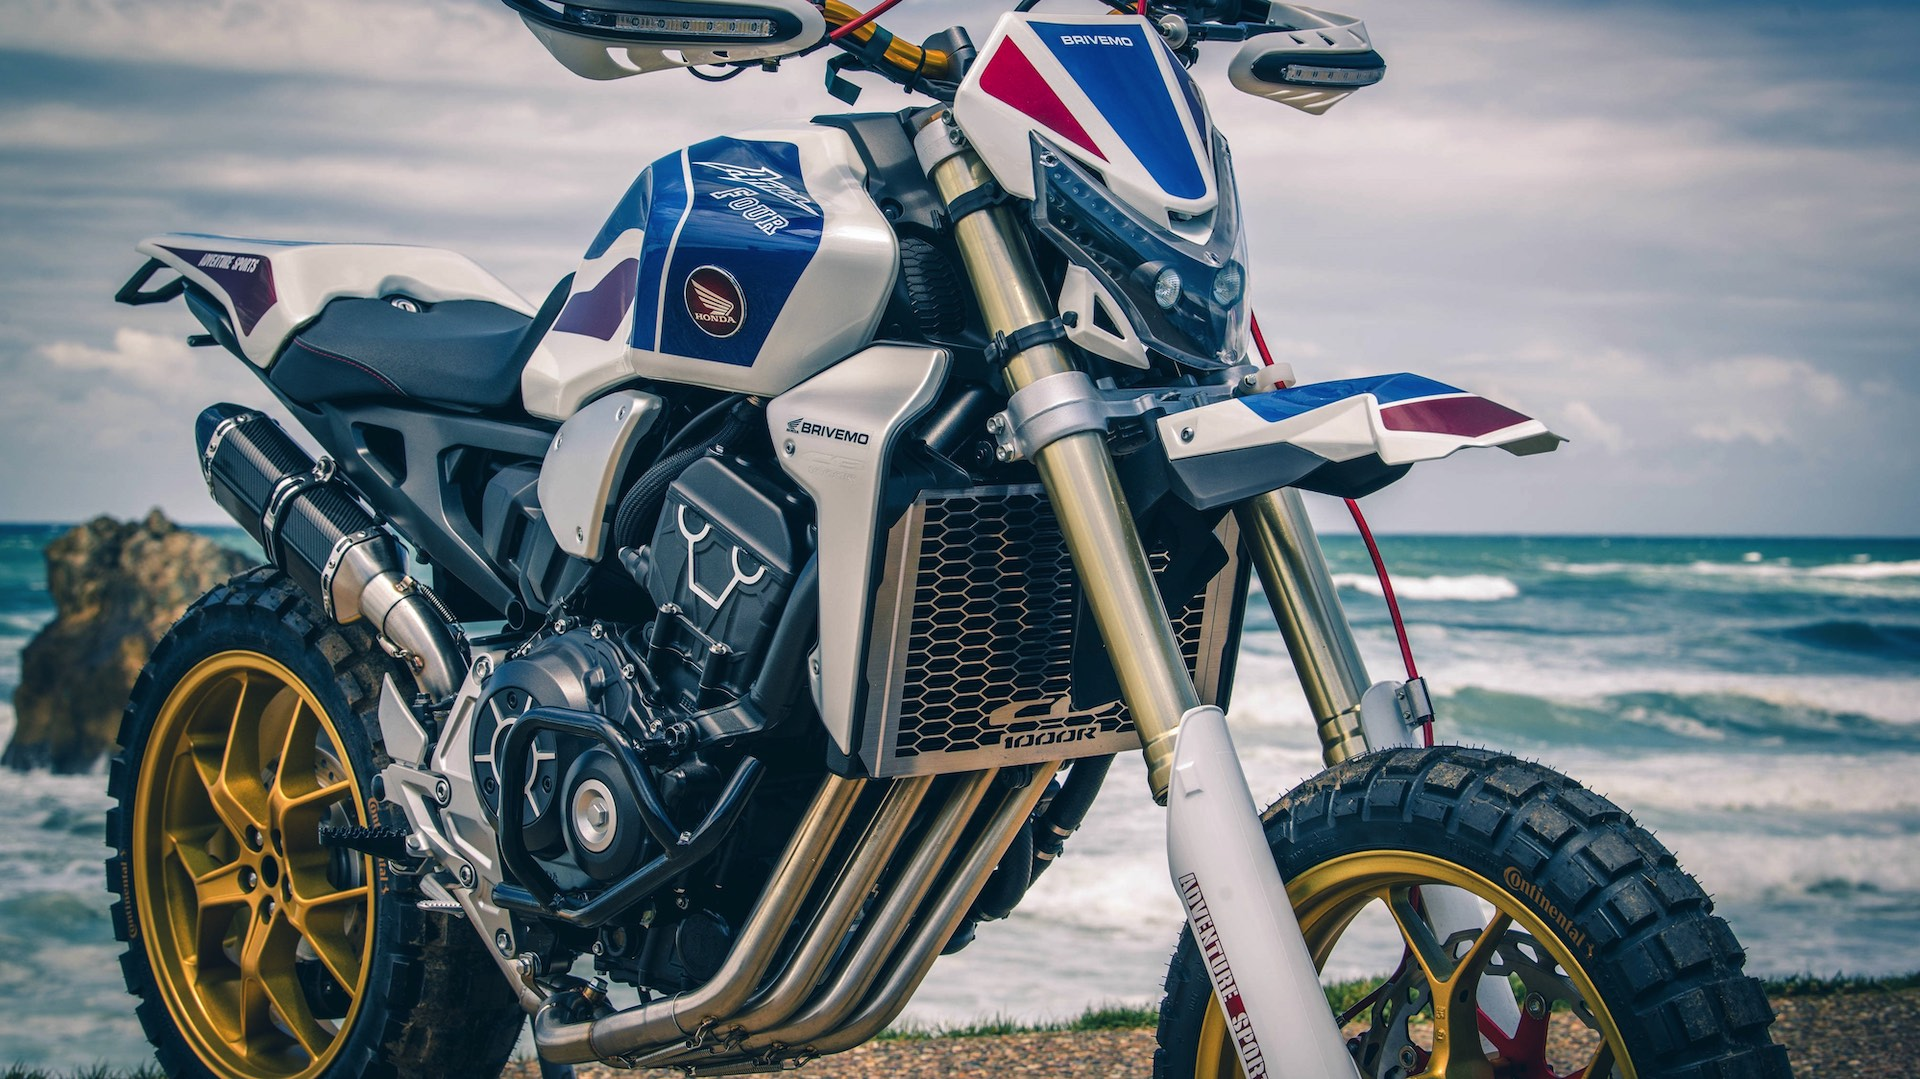 12 Custom Honda CB1000R Motorcycles You Must See